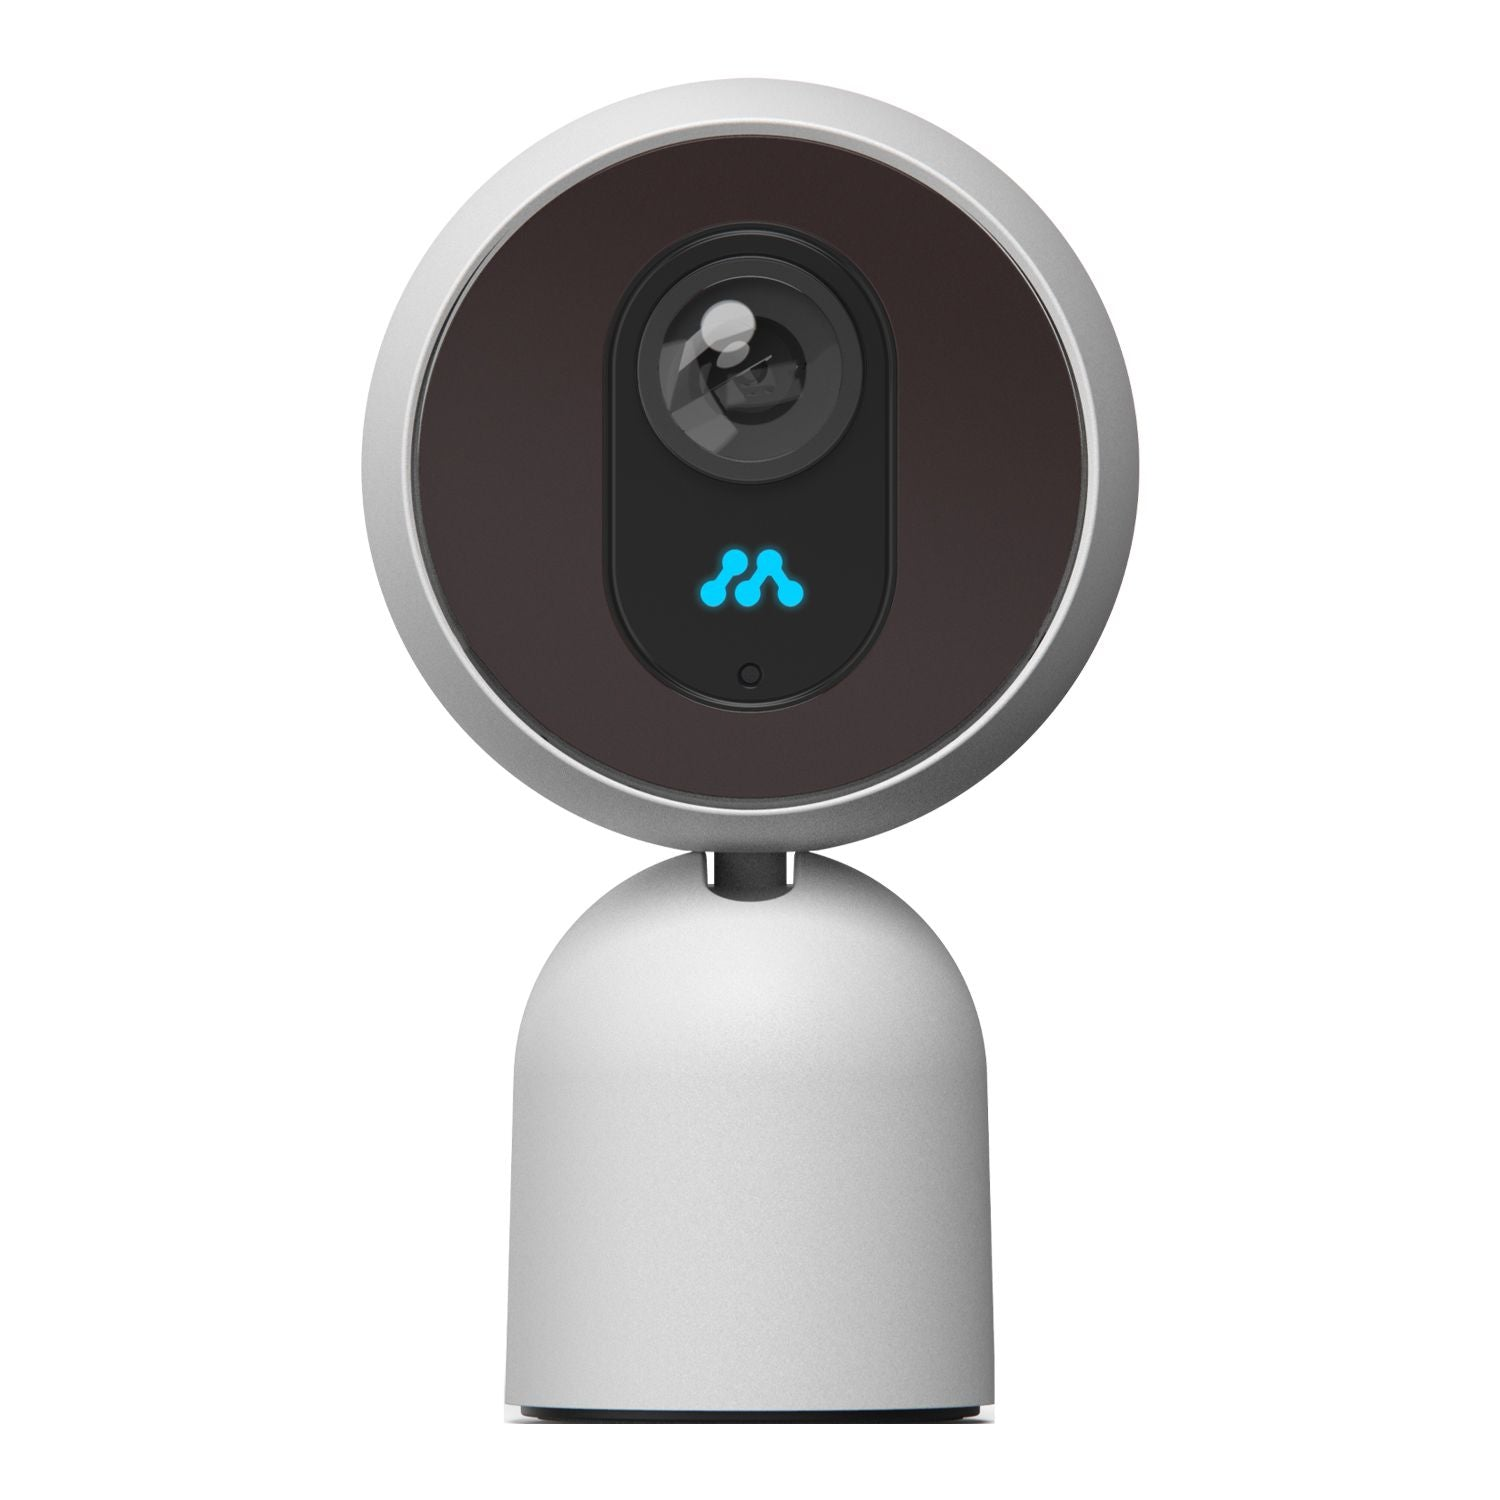 Momentum : Smart Home Security Cameras – Momentum Home Automation